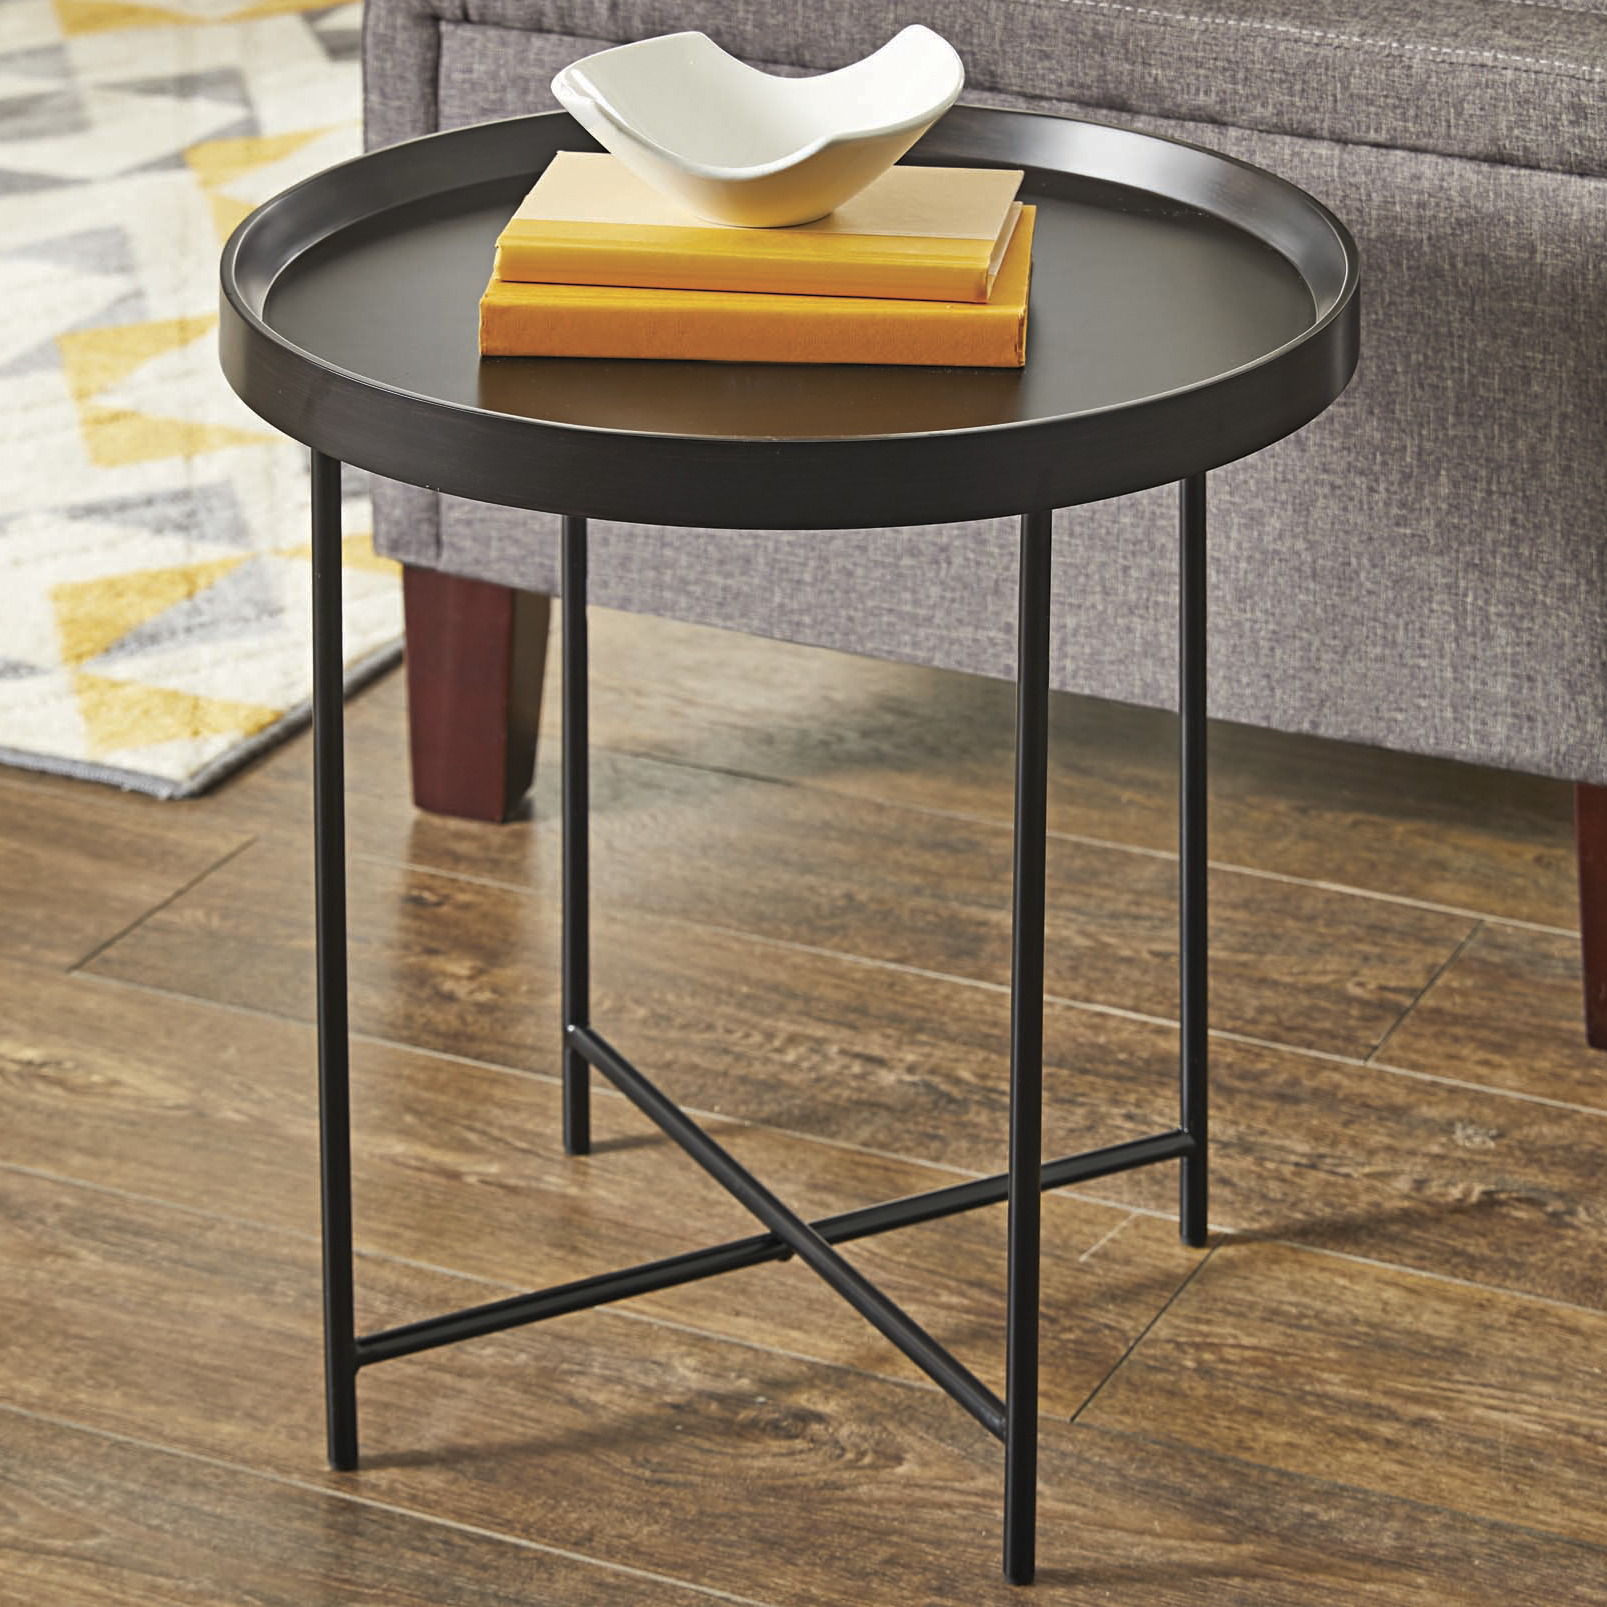 round accent table bedside small modern tray top metal night stand black finish foyer pedestal with drawer tile door cabinet outdoor daybed indoor mats pier dishes rattan coffee